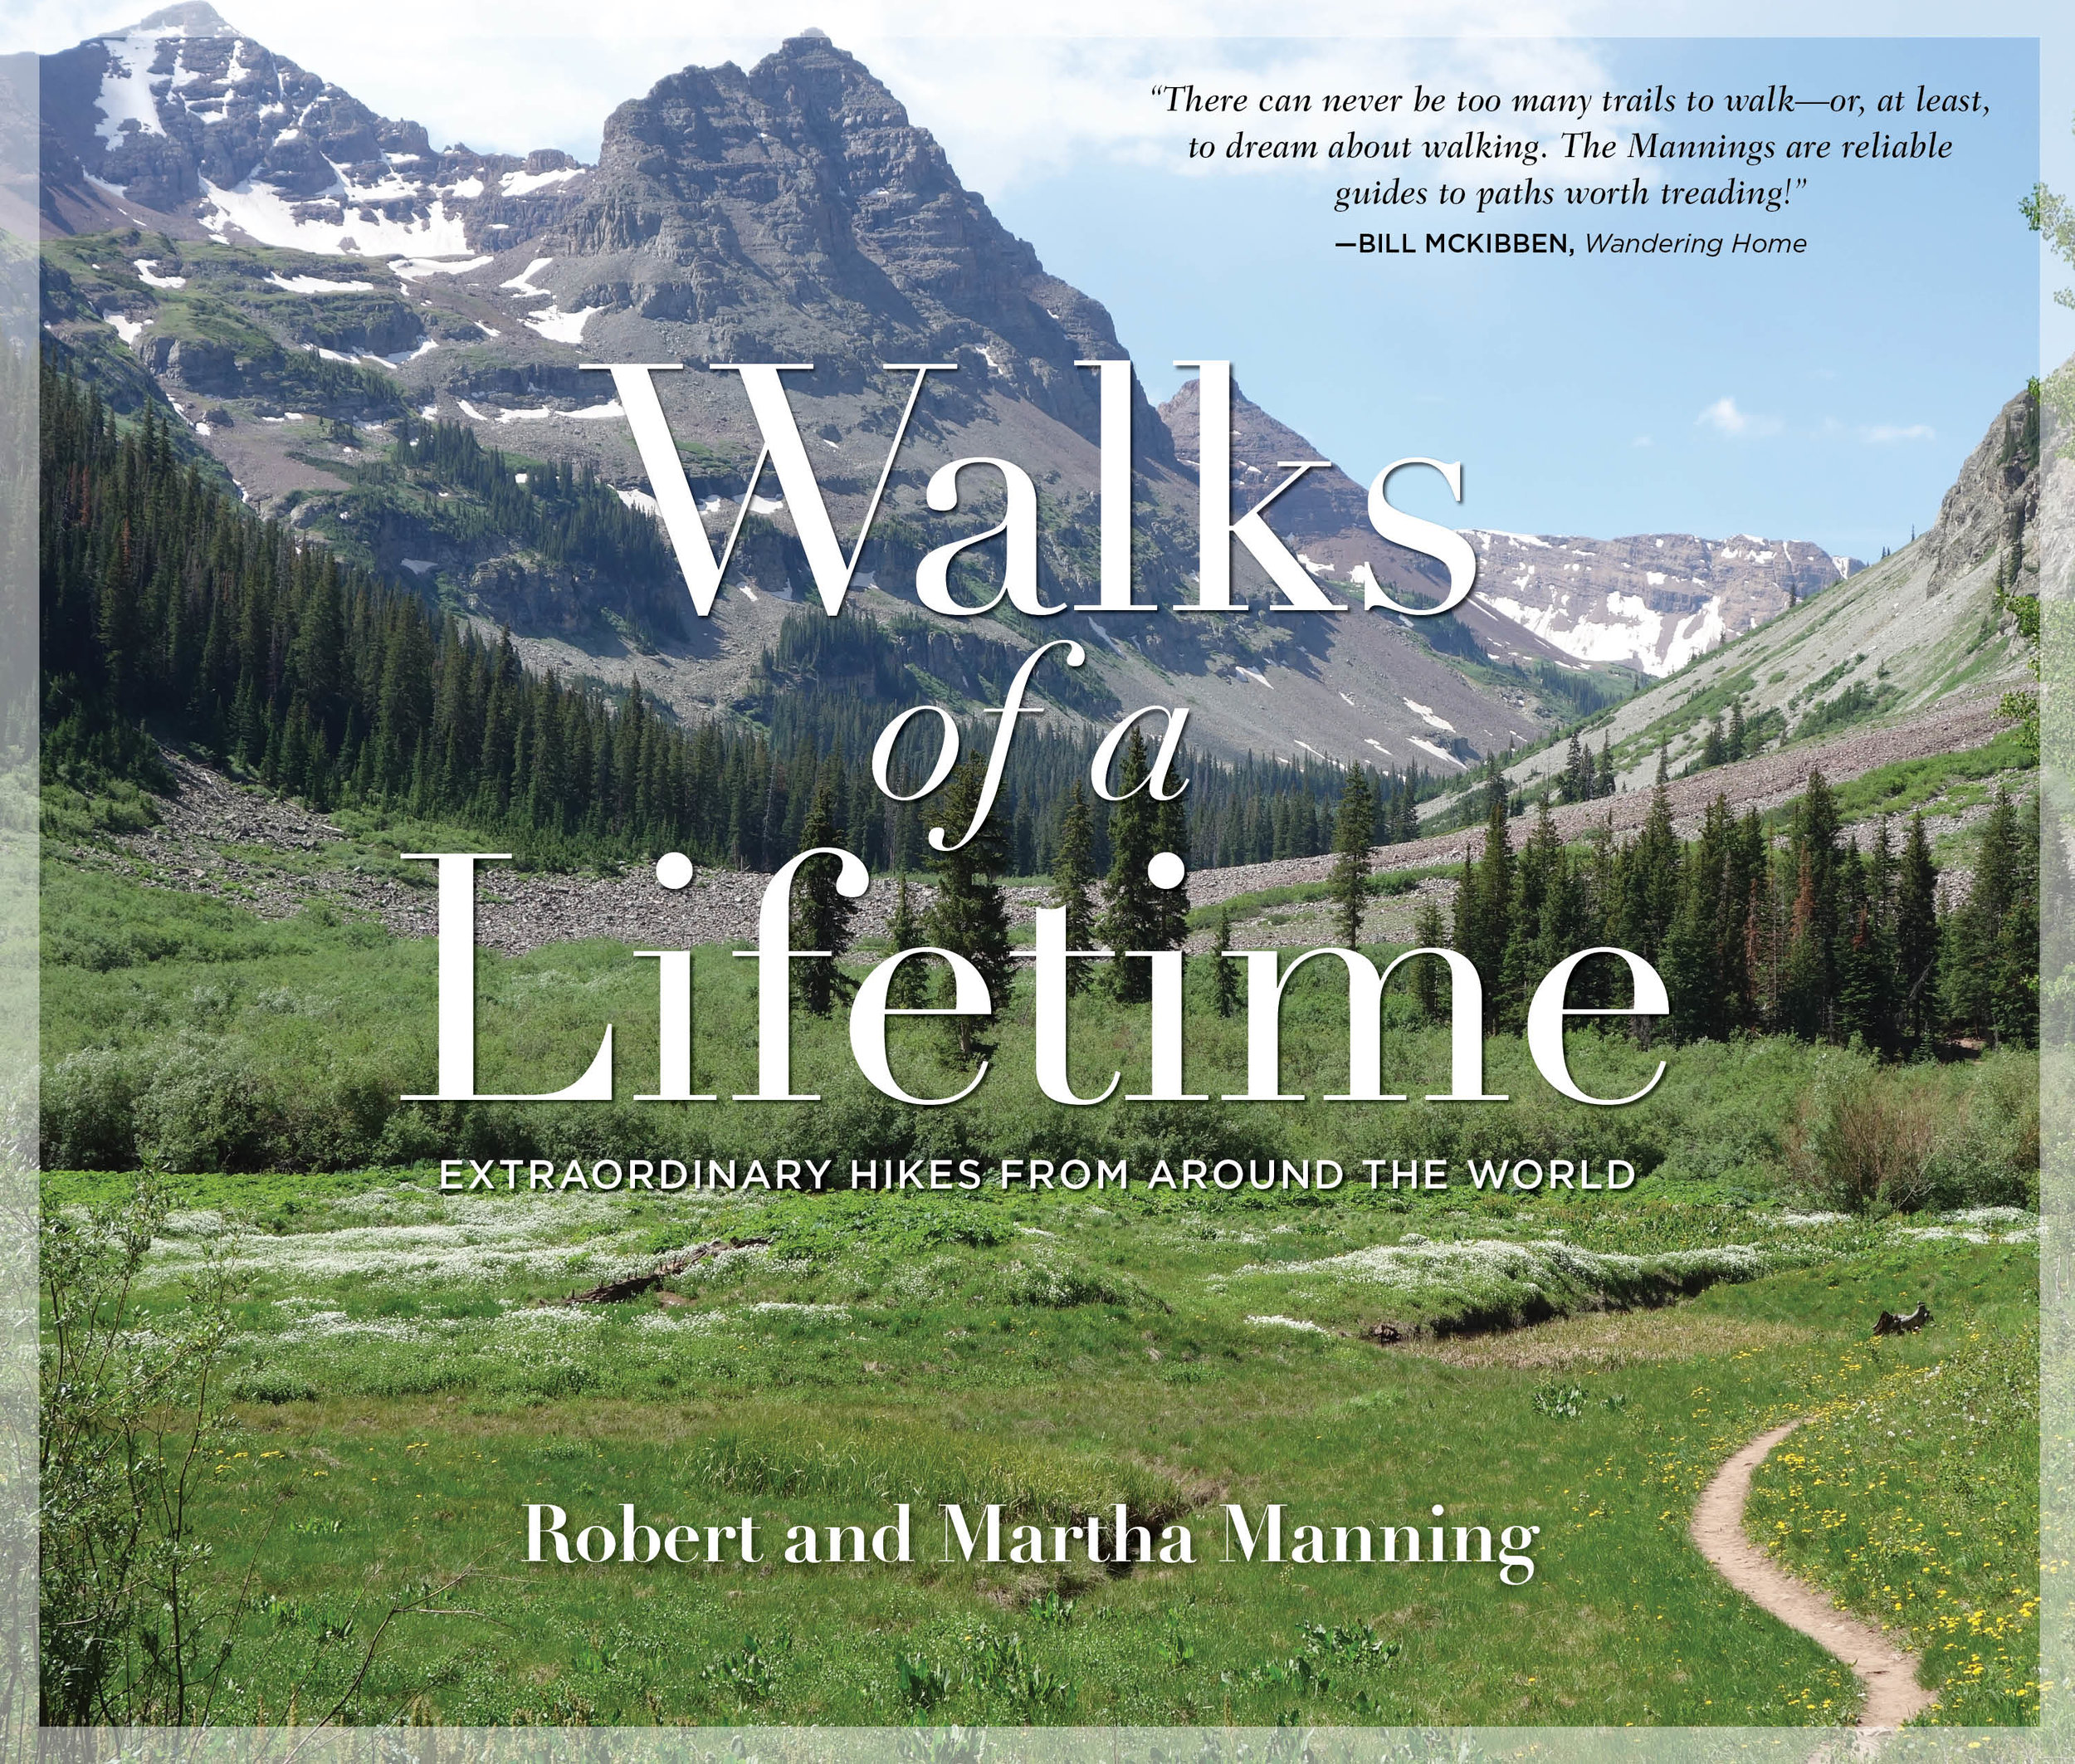 - Walks of a Lifetime: Extraordinary Hikes from Around the World offers first-hand descriptions of 30 more great long-distance trails and multi-day hikes. Trail descriptions are interspersed with 30 short essays on the many dimensions of walking.